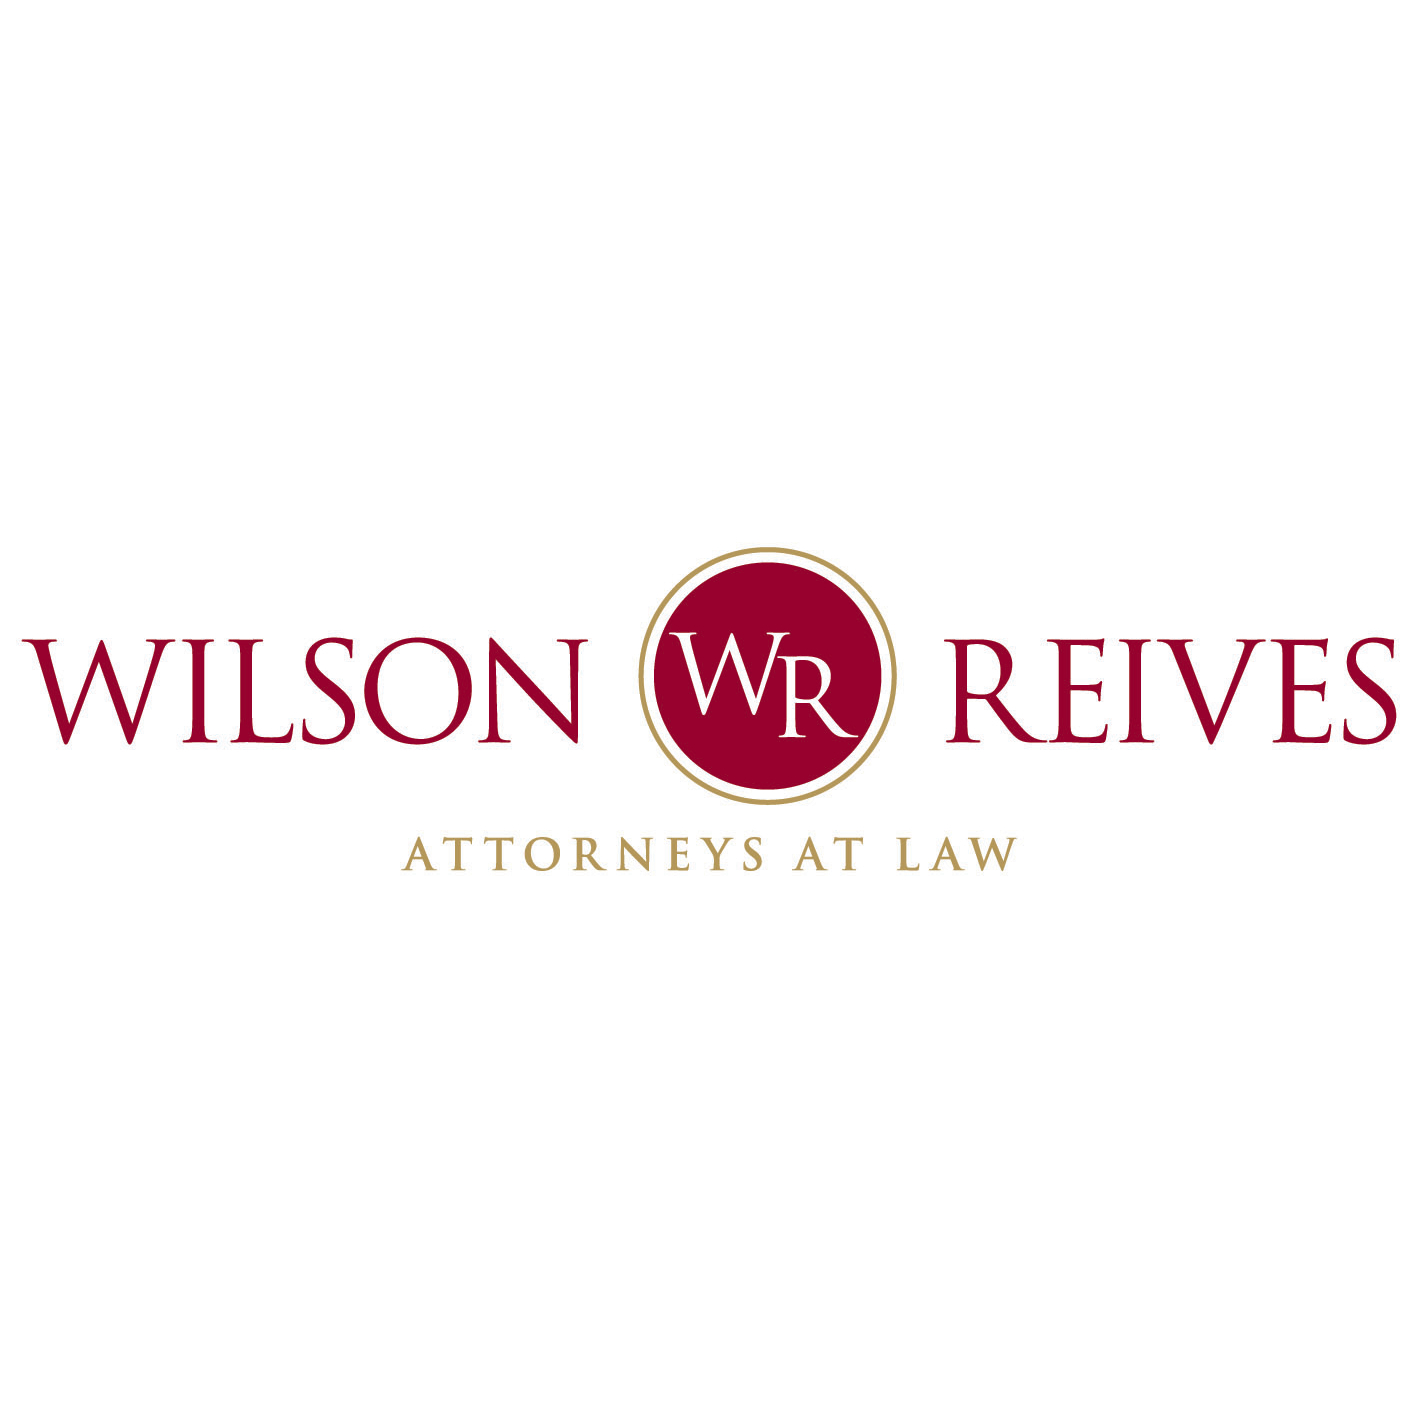 Wilson & Reives Attorneys At Law